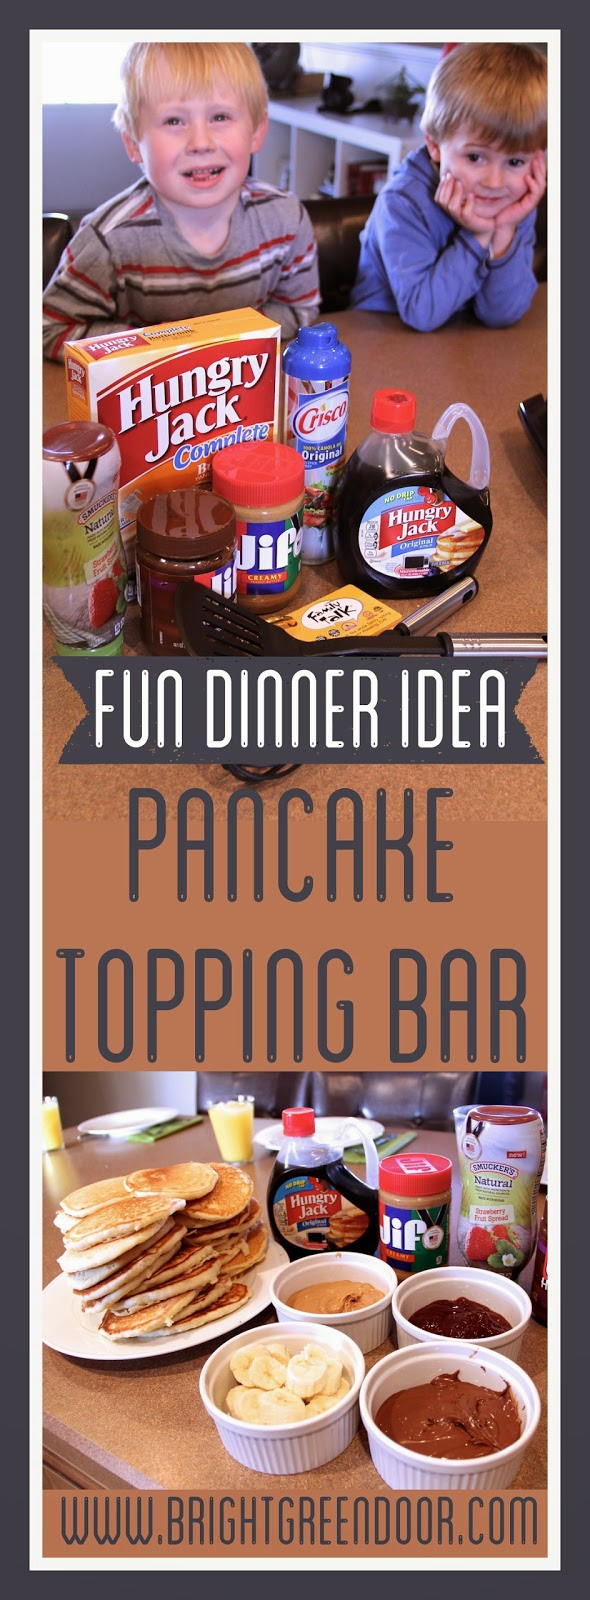 Fun Dinner Idea: Pancake Topping Bar